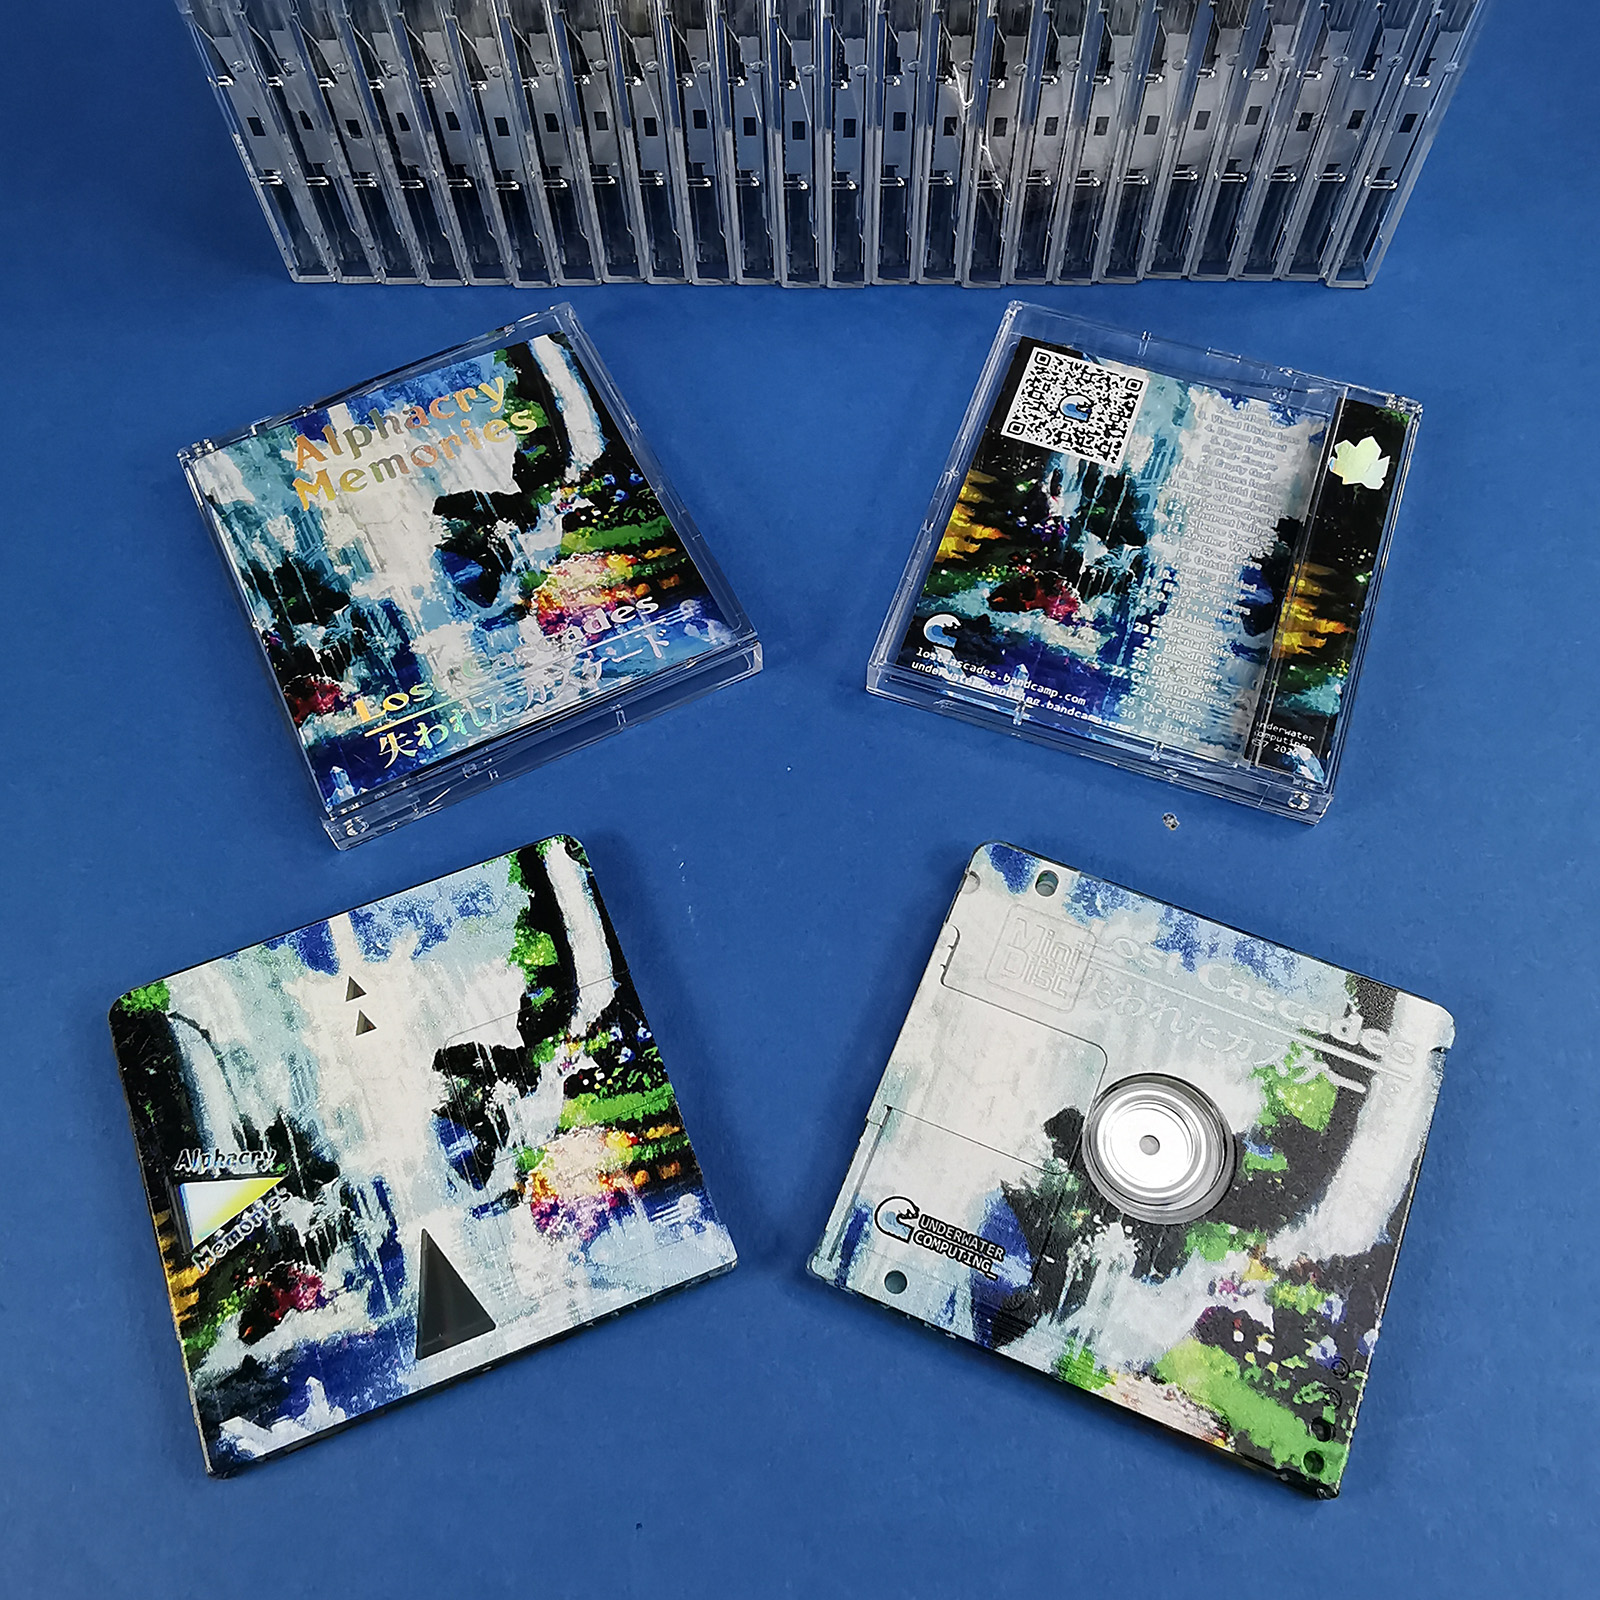 MiniDiscs with holographic foil printed J-cards